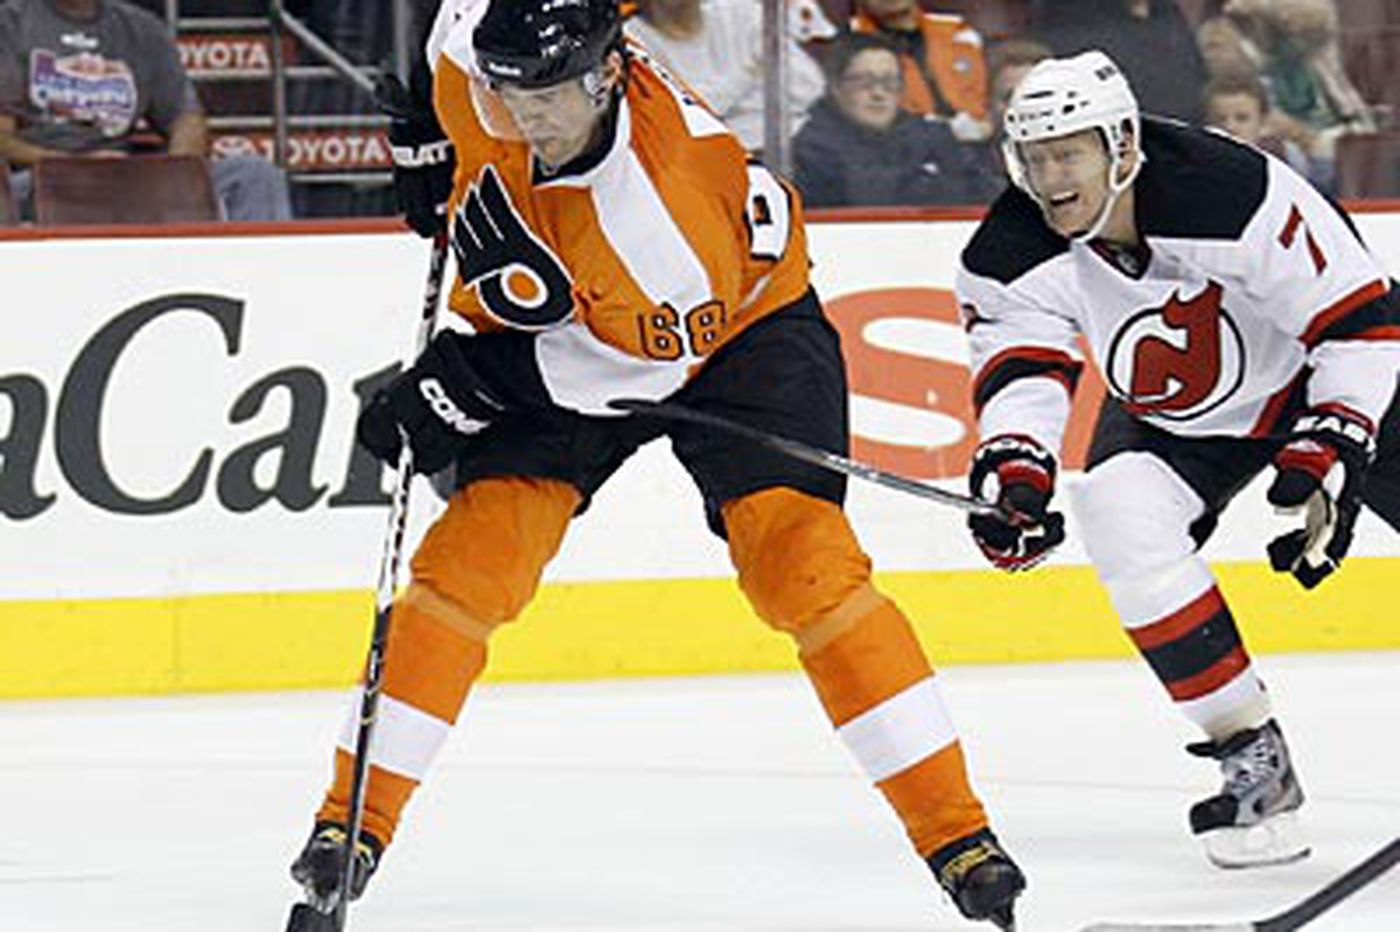 Phil Sheridan: A new chapter in Flyers-Devils rivalry